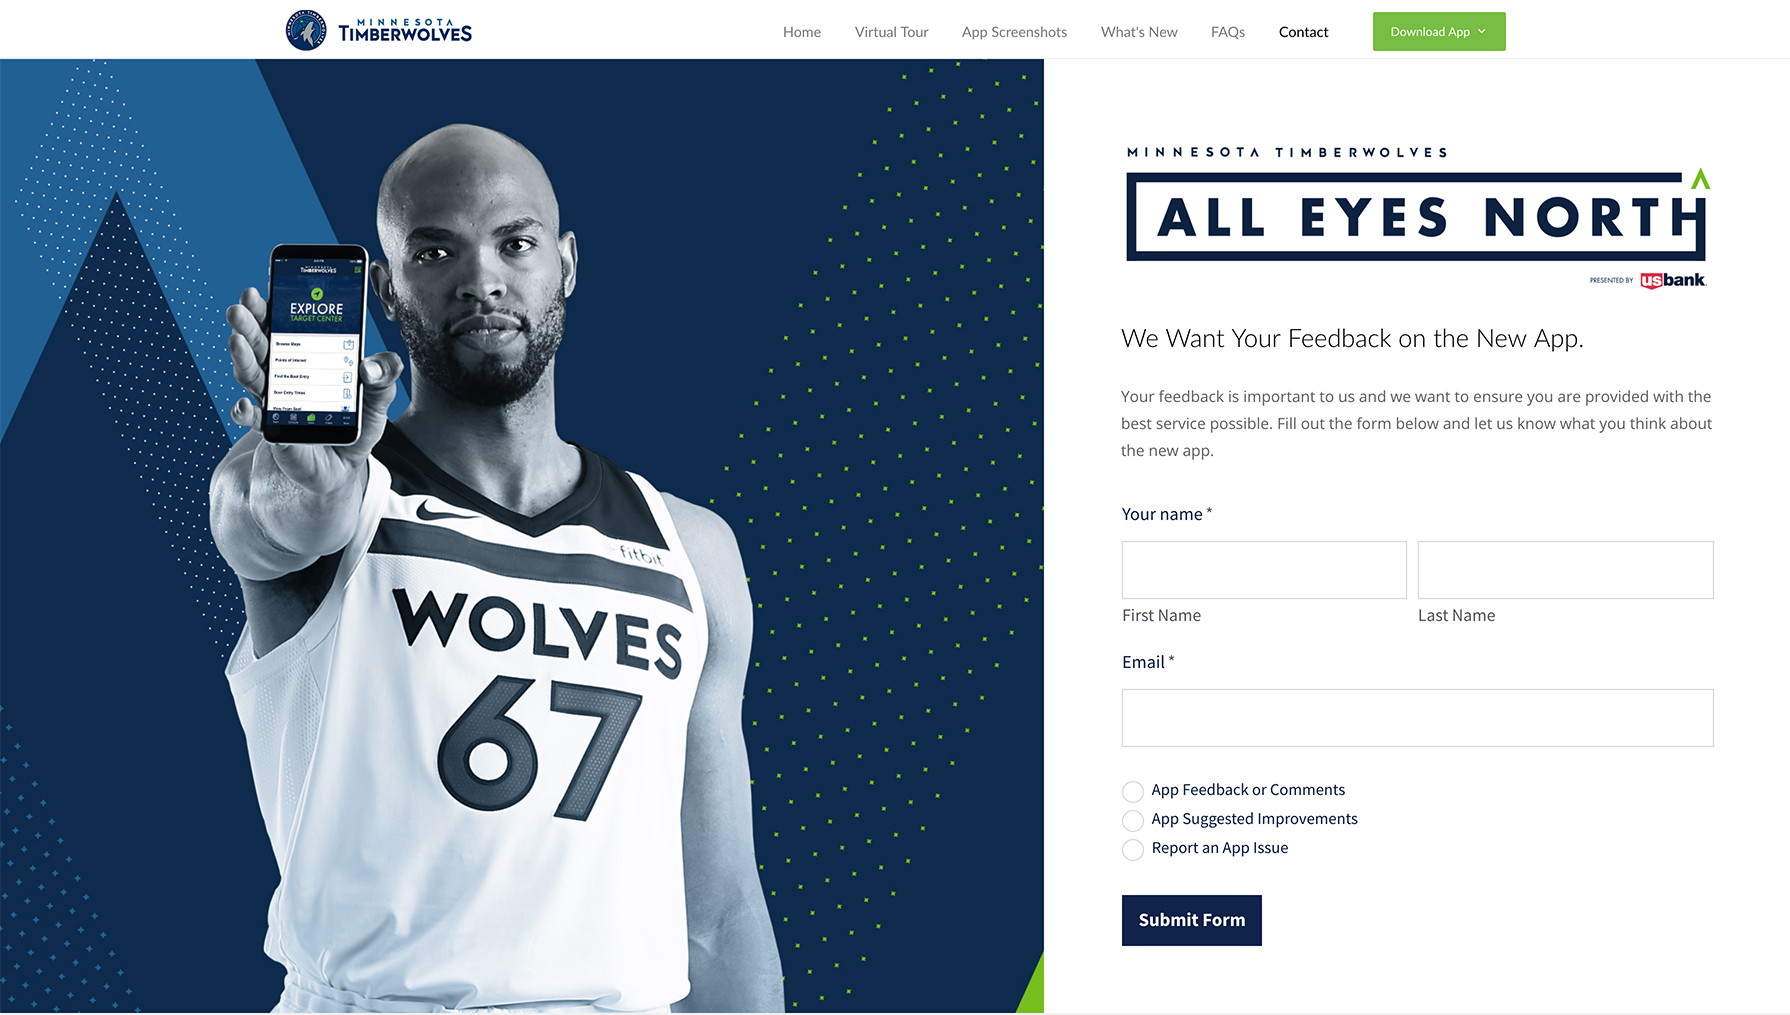 Timberwolves Mobile App, Lead Generation, Desktop View